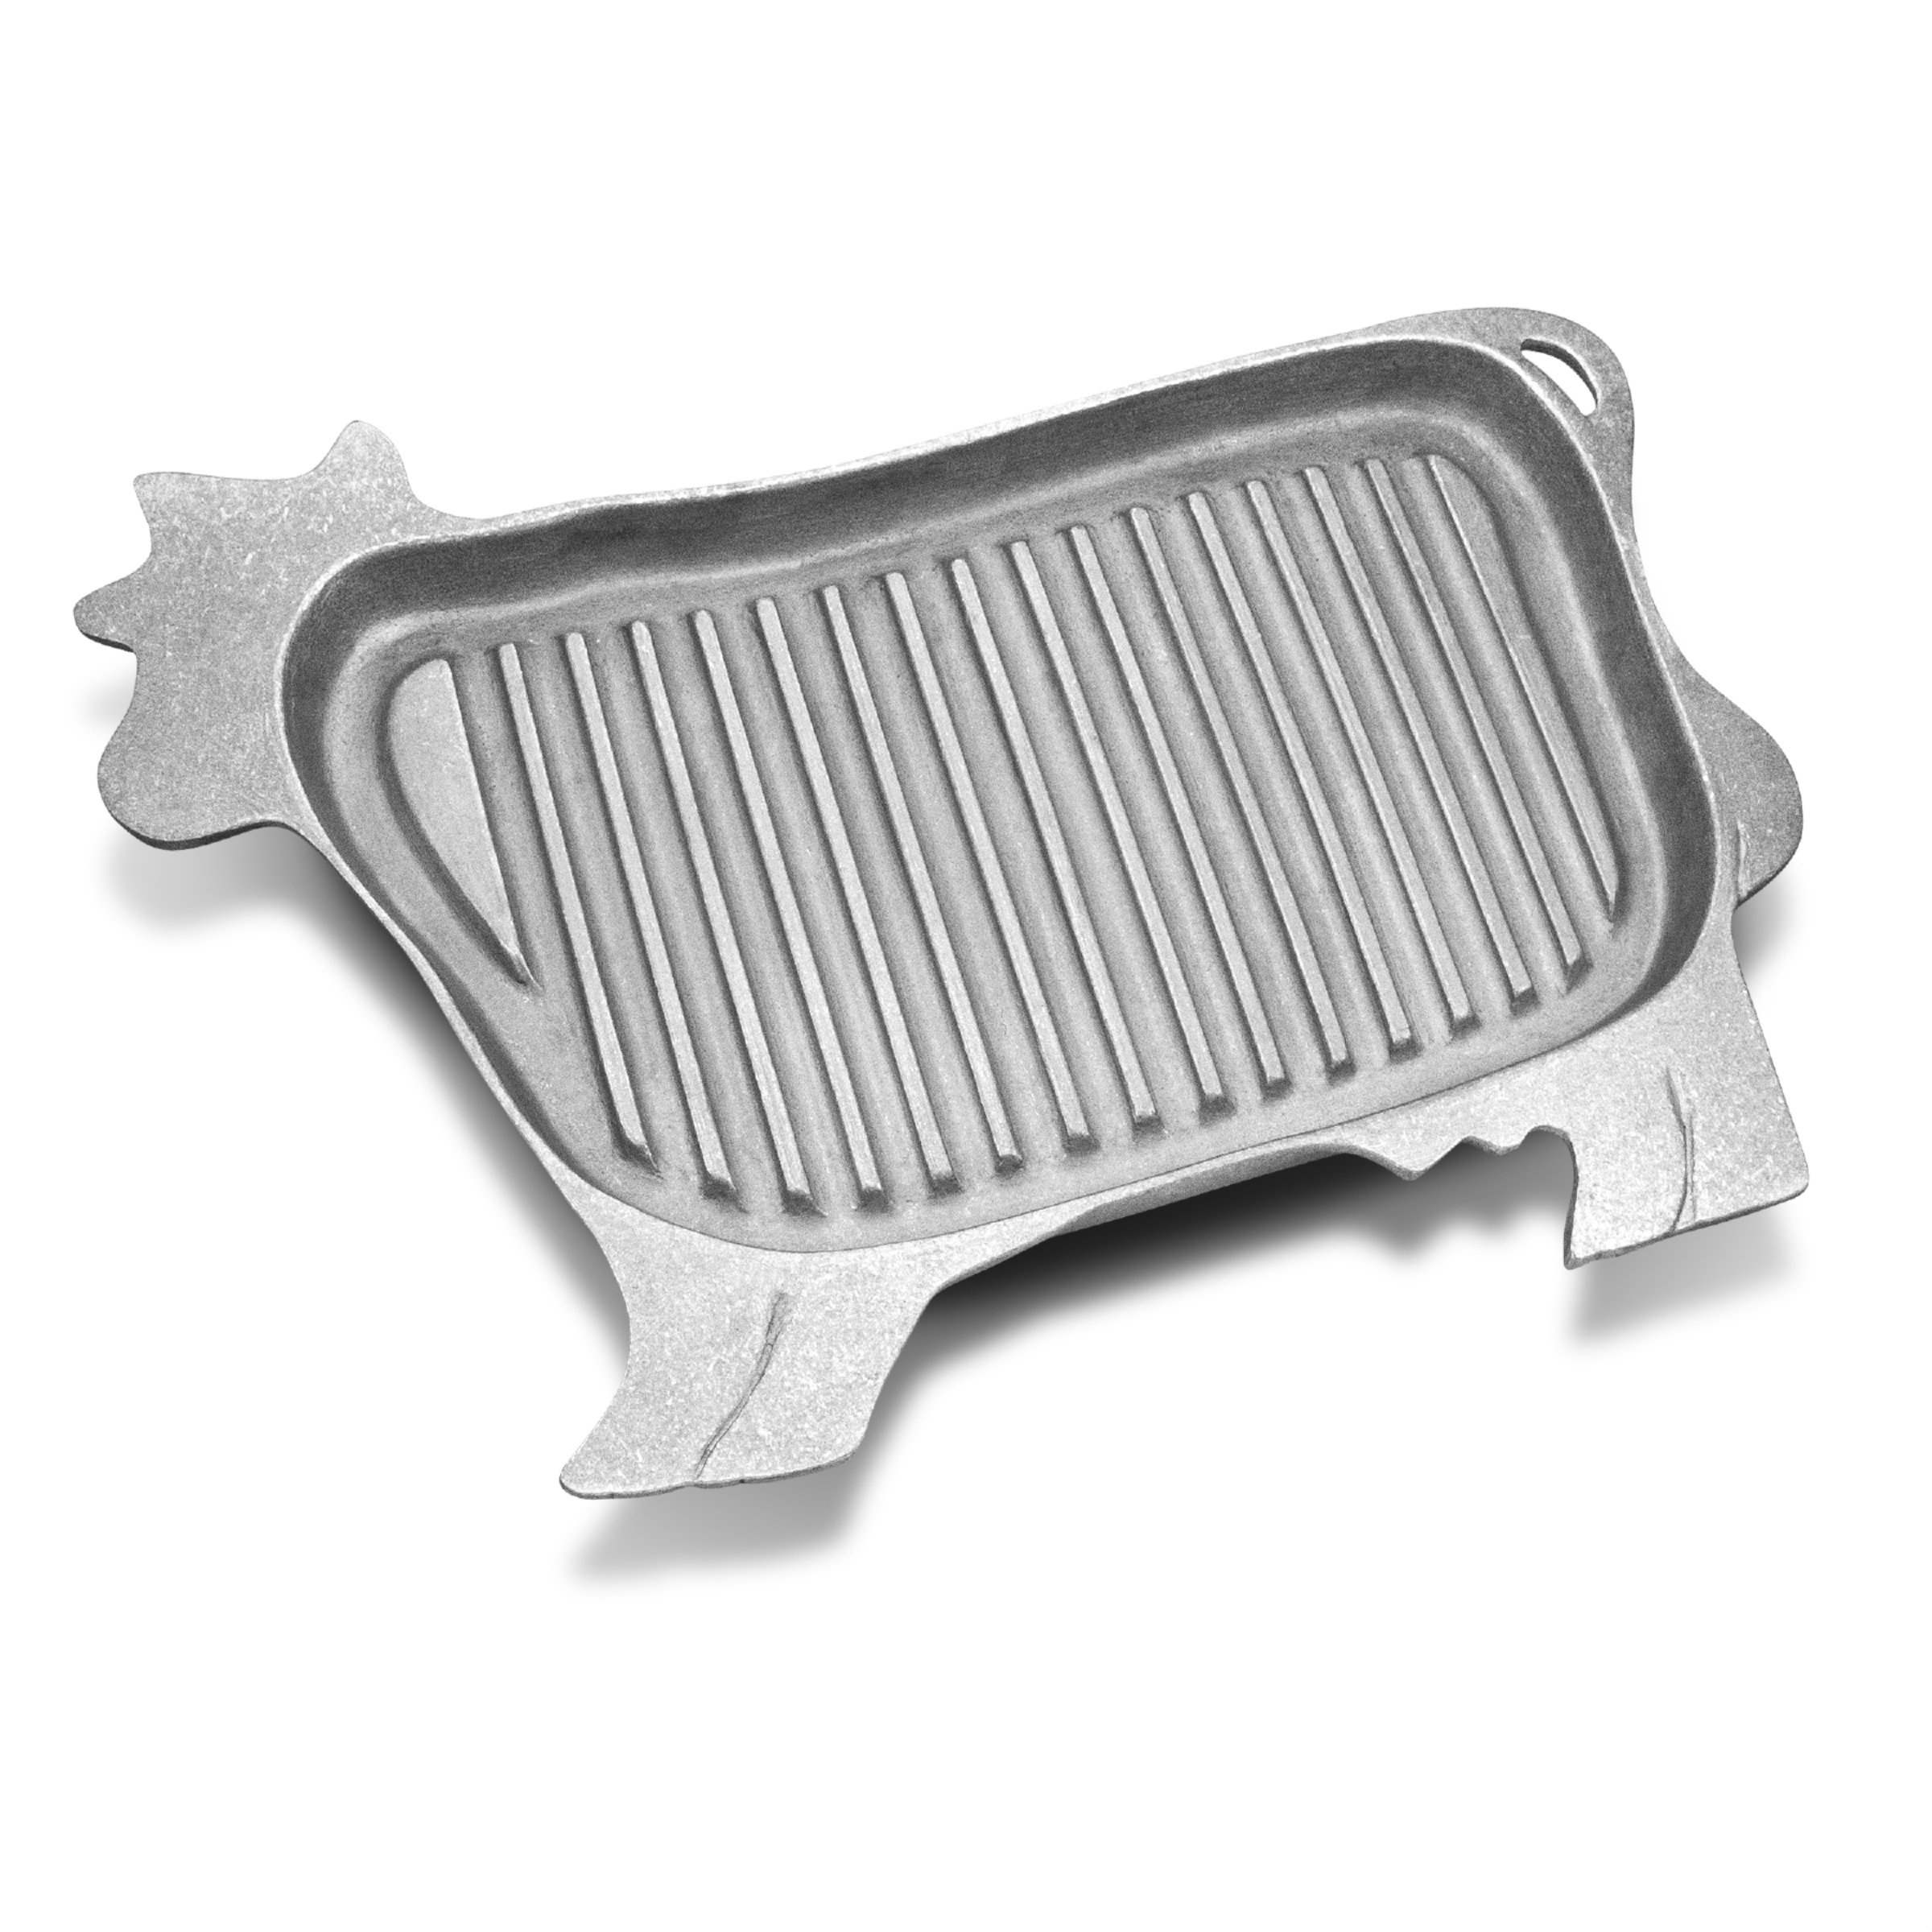 Wilton Armetale Gourmet Grillware Grilling Pan, Cow Griller, 16.5-Inch